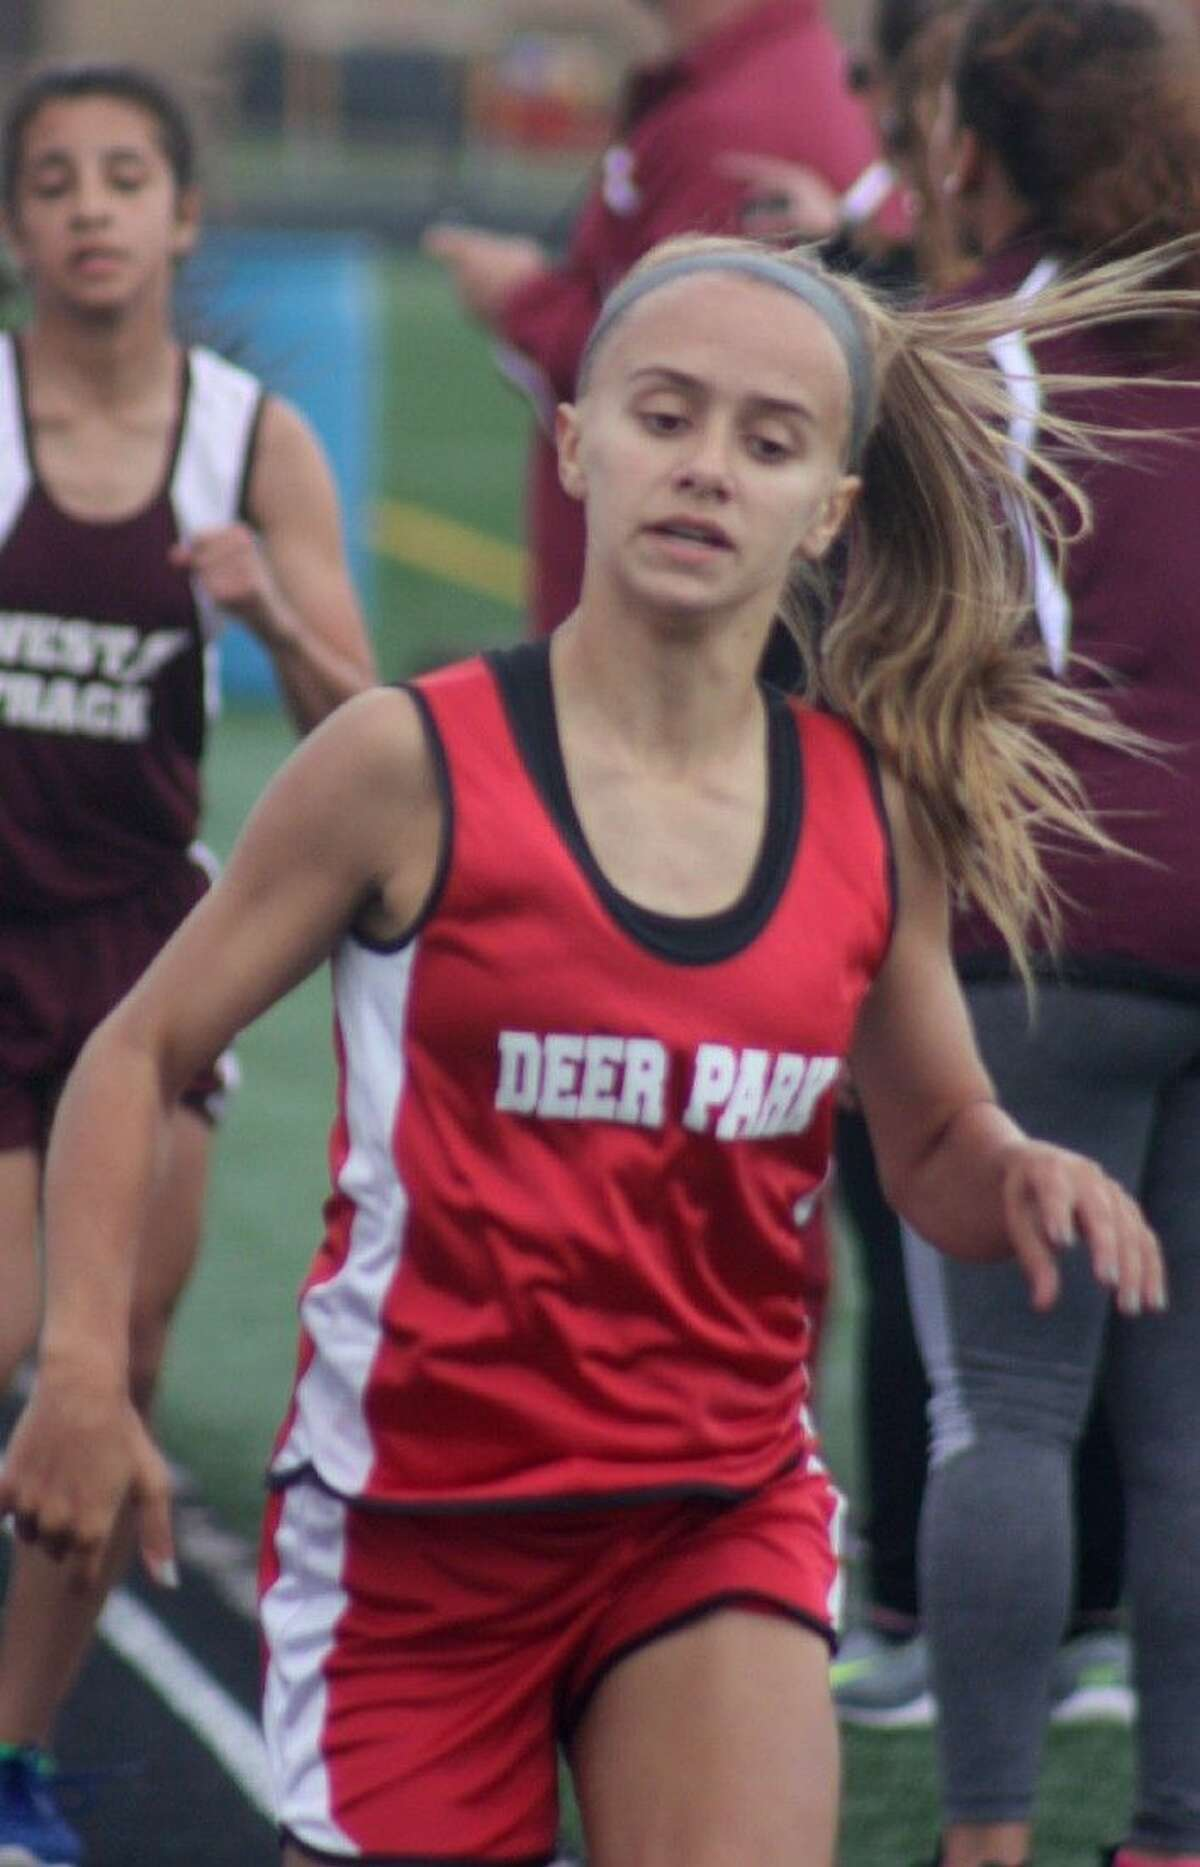 Audrey Addison comes across the finish line in the 800-meters for the first of her two titles at the conference district track and field meet. She was the only athlete from Deer Park ISD to score points in the 800 and 1600 and nearly the eighth grade as well.